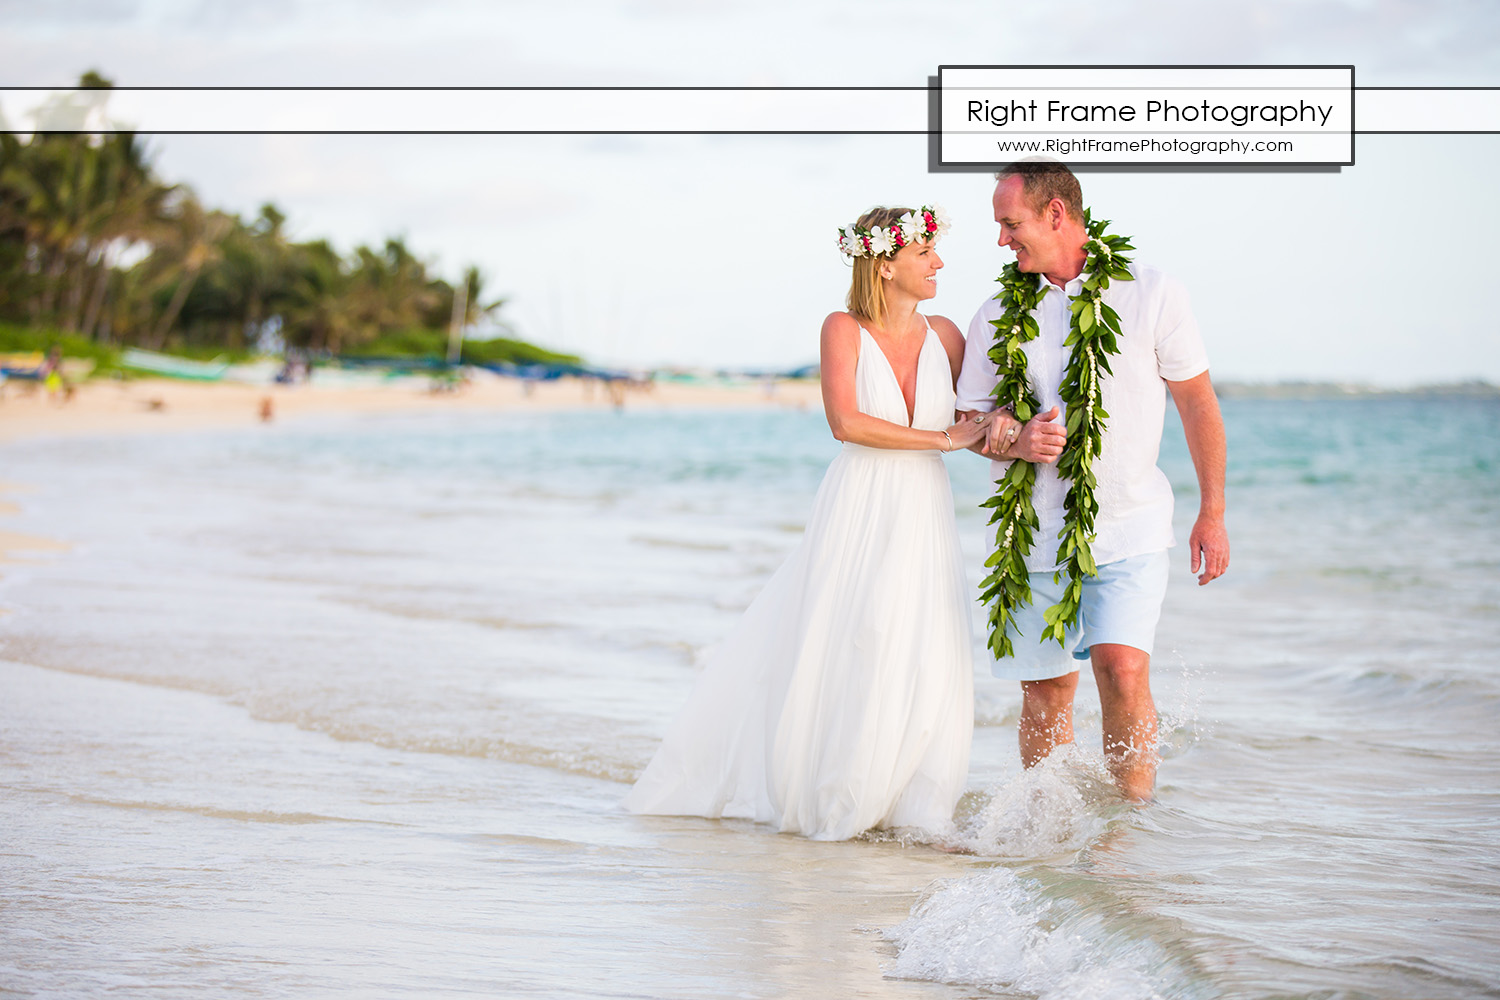 Sunrise Vow Renewal in LANIKAI BEACH OAHU HI